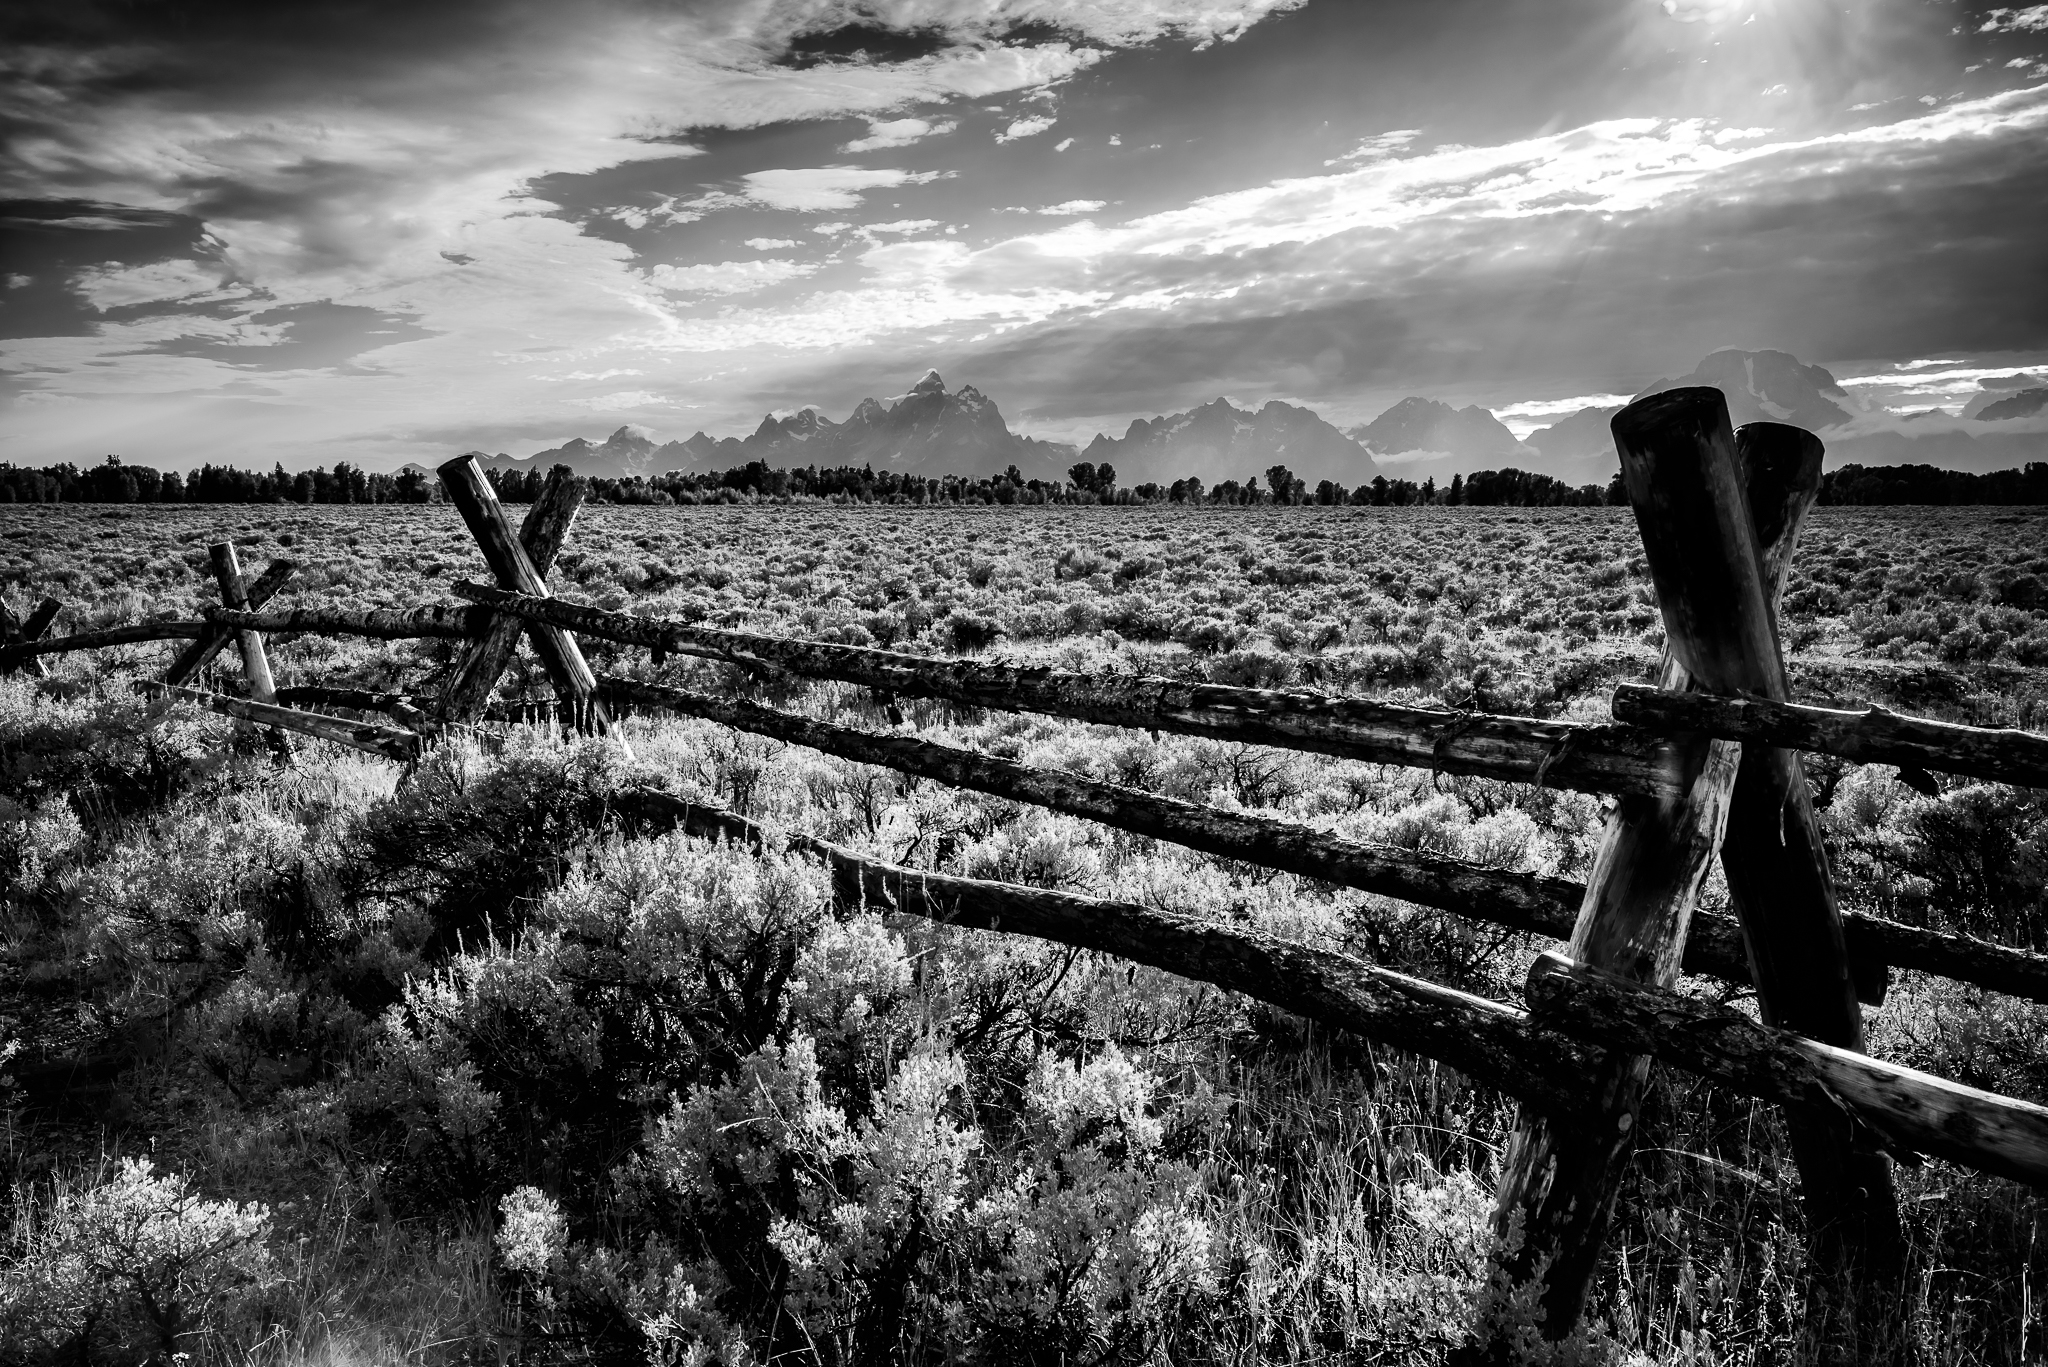 A quintessential western style fence in Grand Teton National Park, WY.